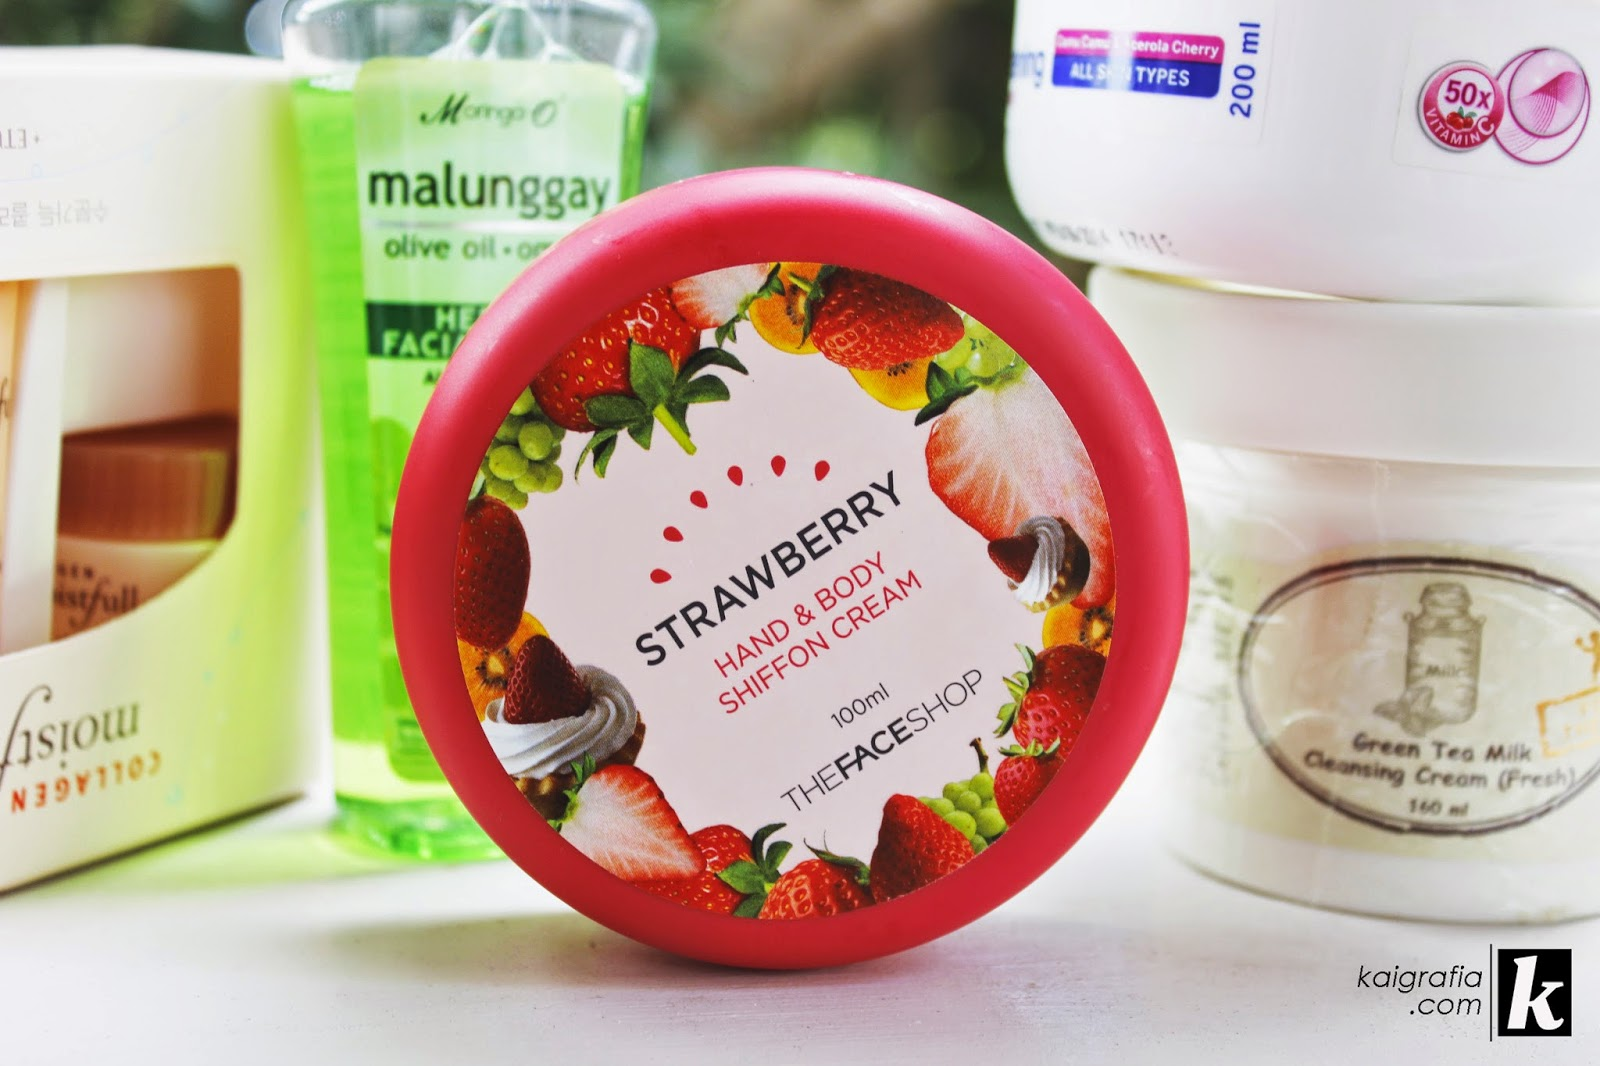 The Face Shop Hand and Body Chiffon Cream Strawberry